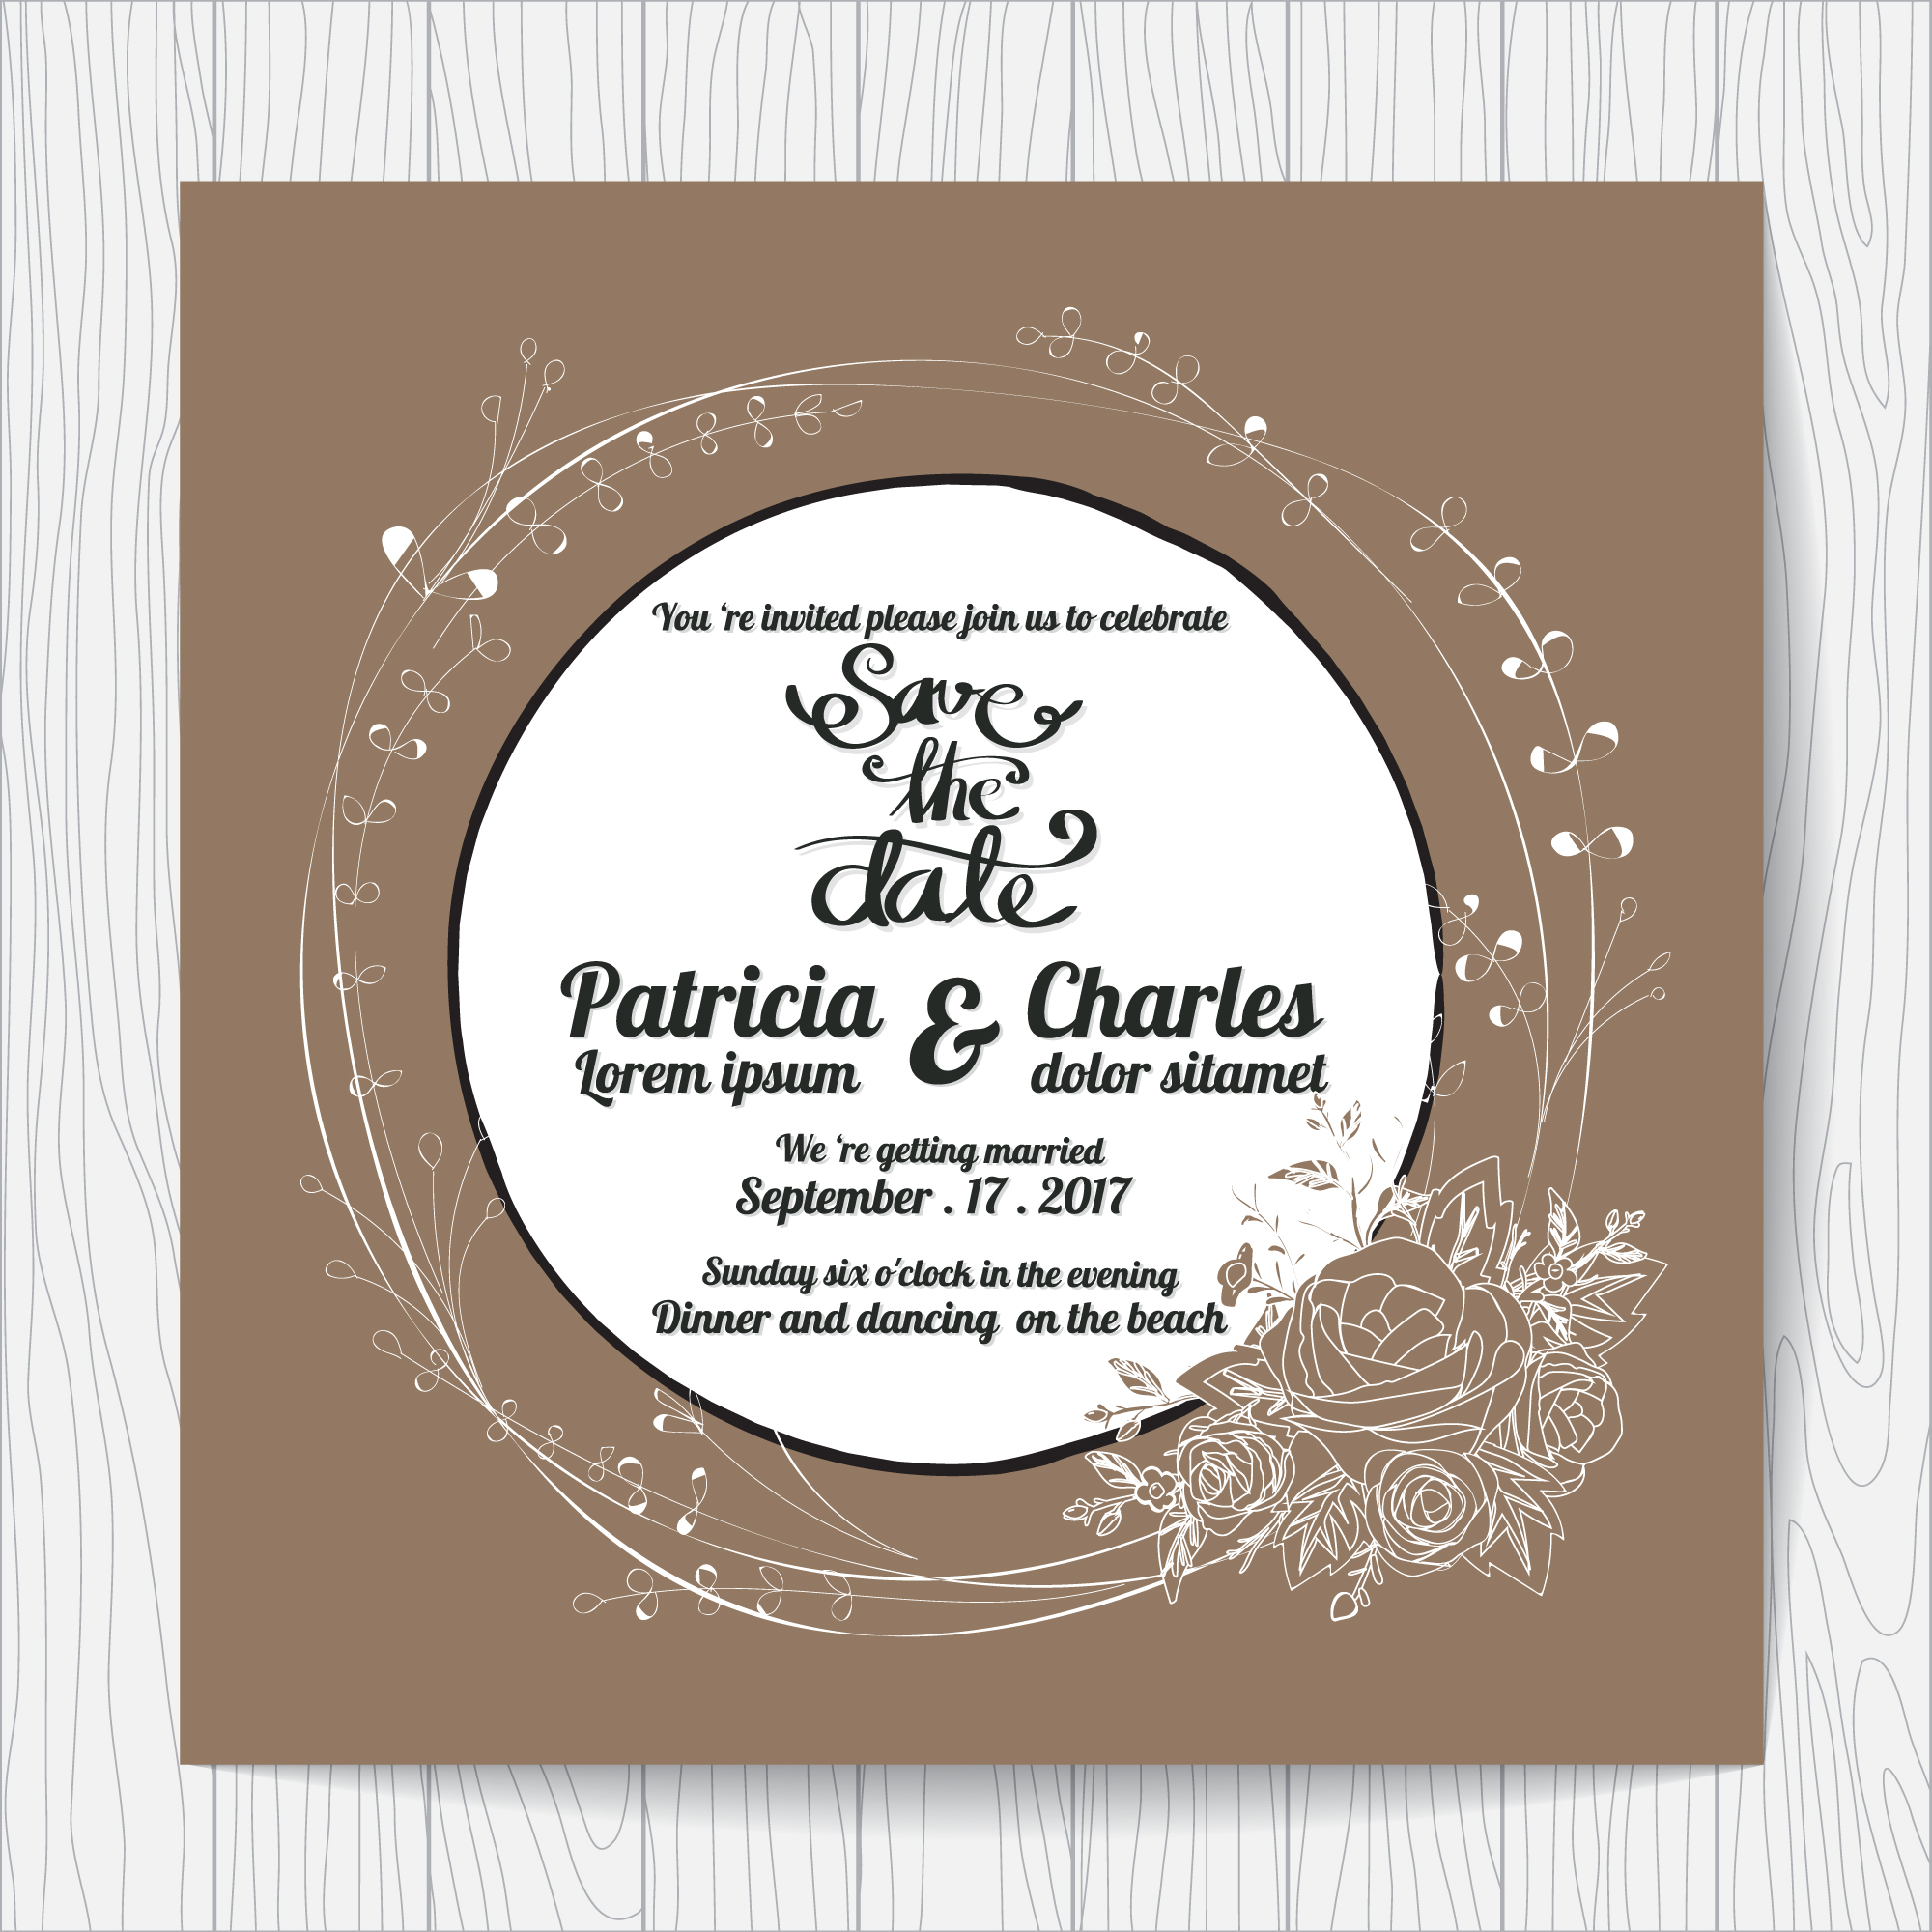 Wedding intivation with rounded design and dark backgroun